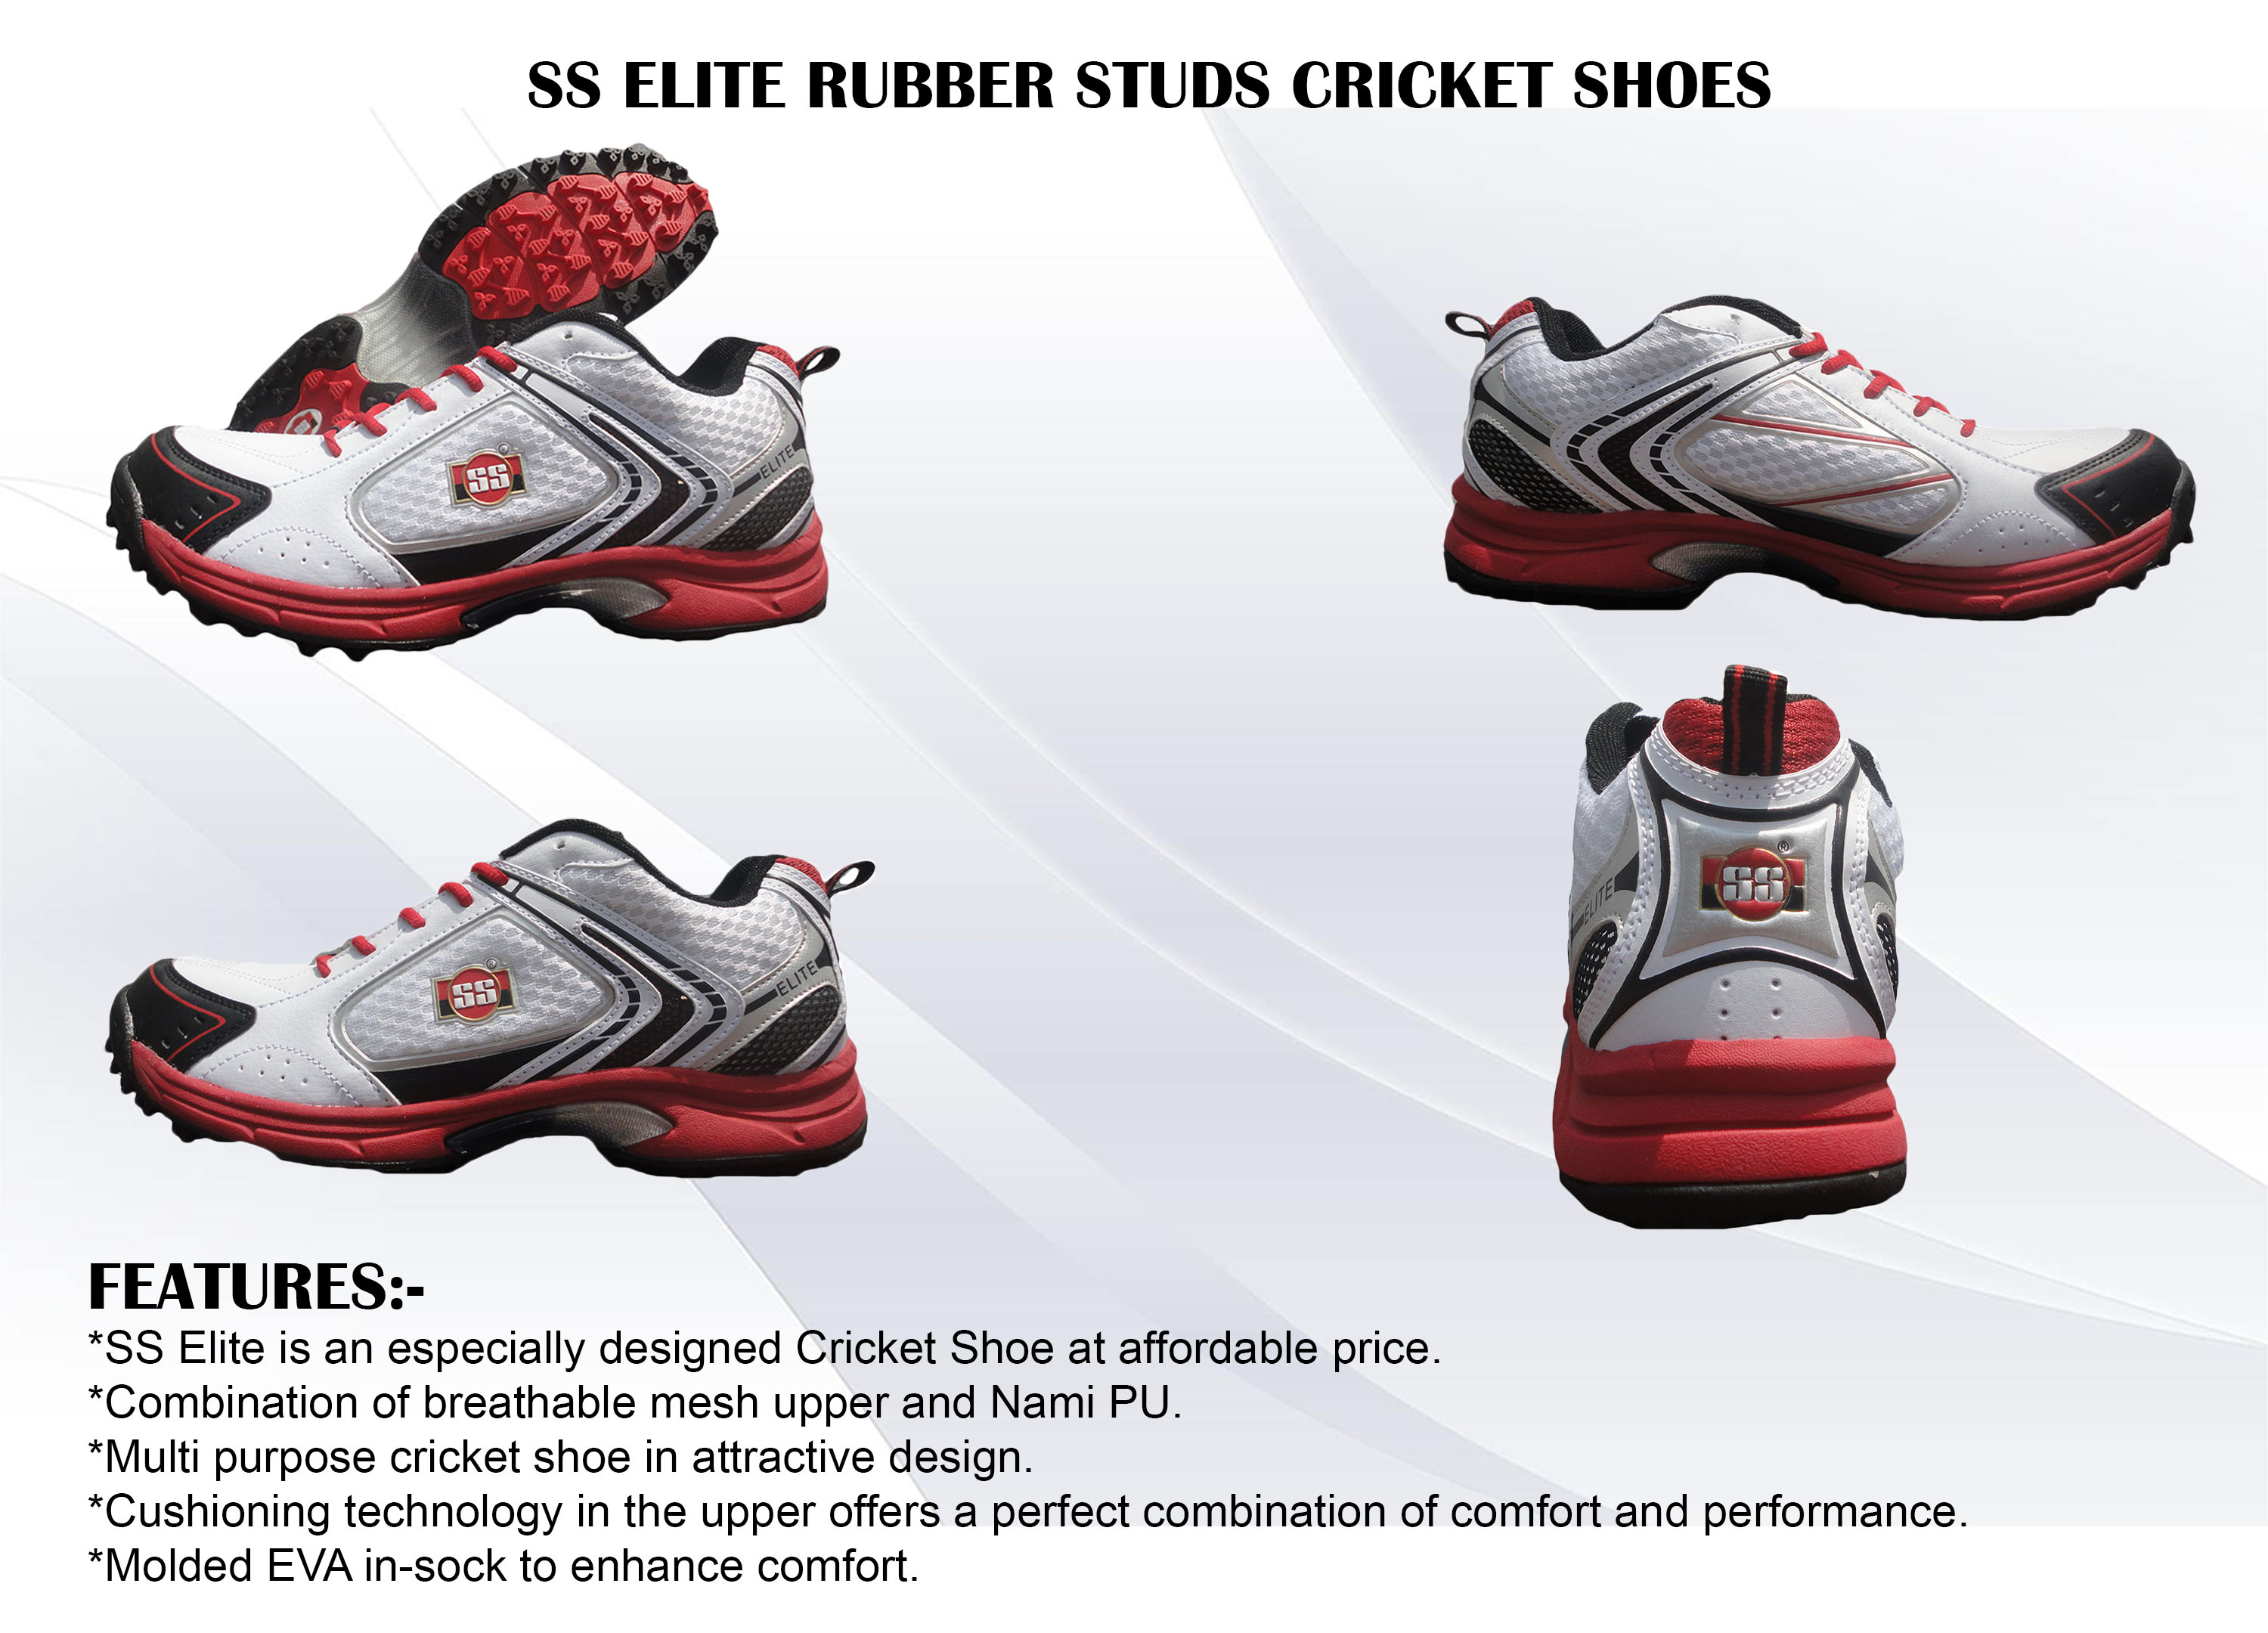 SS ELITE RUBBER STUDS CRICKET SHOES